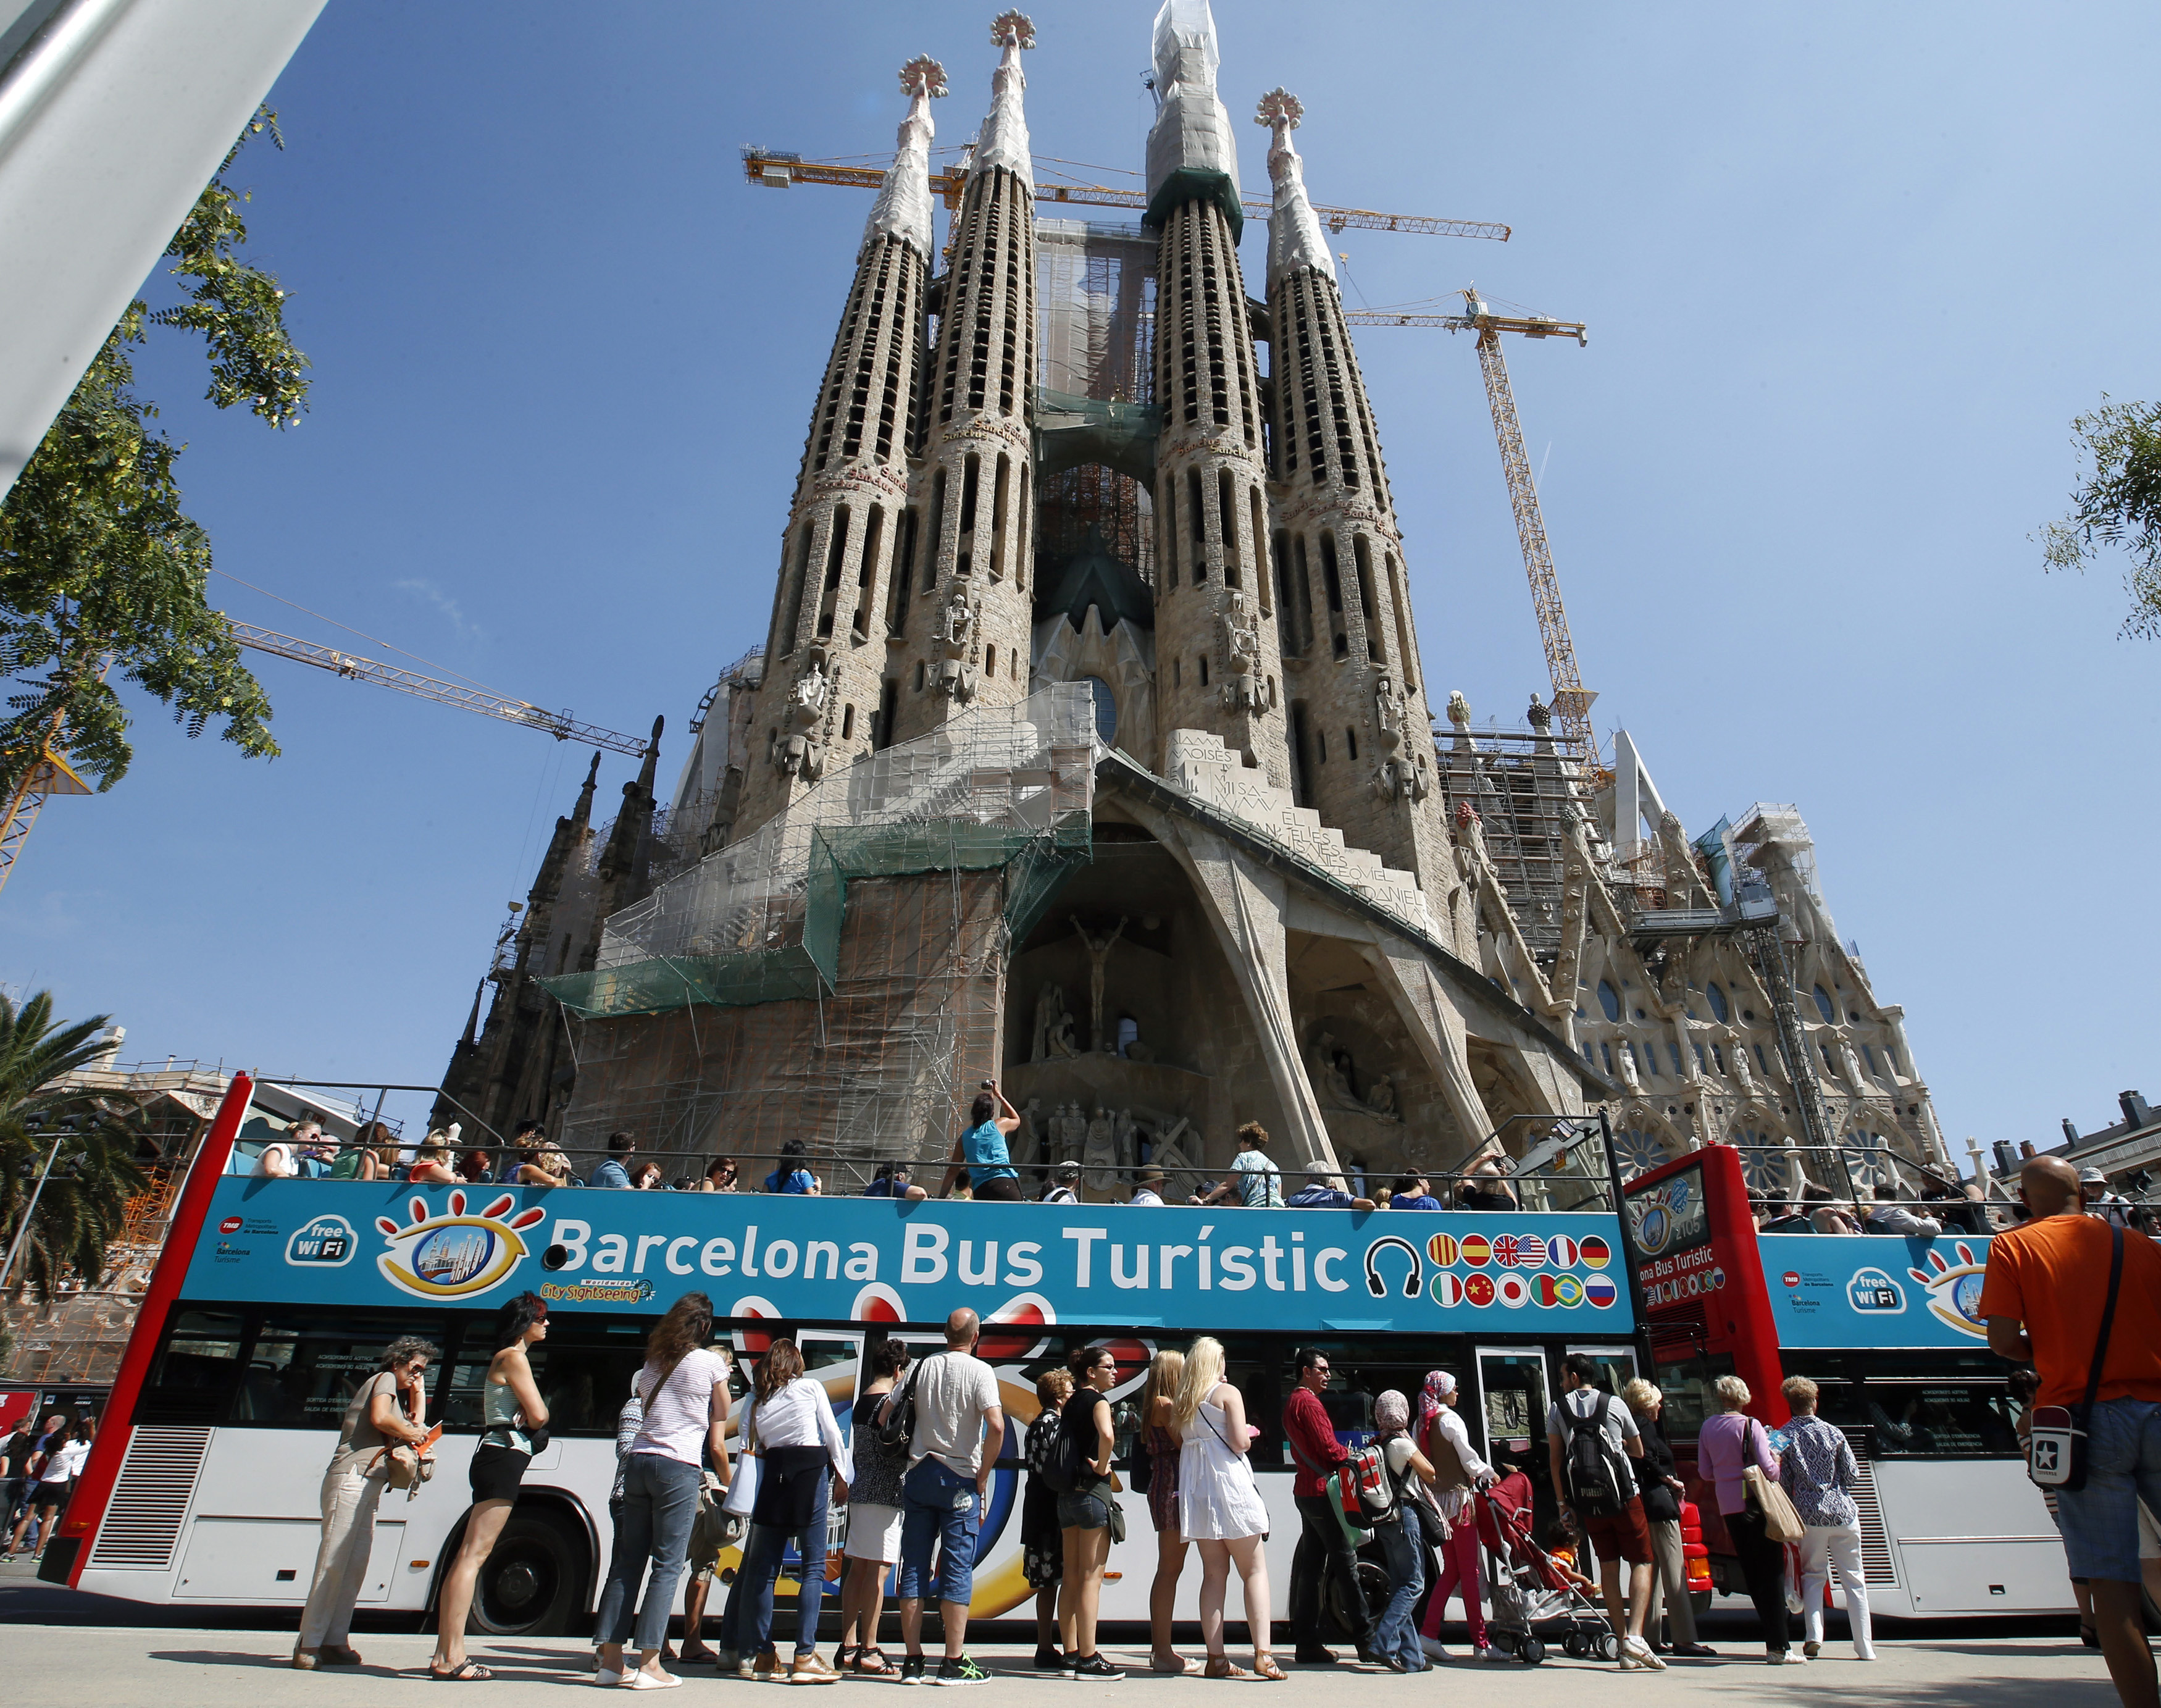 People queue up at a city tour bus stop in front of the Basilica Sagrada Familia in Barcelona, September 13, 2013. Sunseekers spurning unrest in Egypt and Turkey flocked to Spain in record numbers in August, setting the country up for its best-ever year for visitors and giving a boost to the ailing economy. Tourism contributed over 5 percent of Spain's economy or GDP in 2012 and provided around 900,000 jobs, according to Euromonitor, in a country where one in four is out of work, meaning a boost to tourist figures should be good news as other sectors flag. Picture taken September 13, 2013.  REUTERS/Albert Gea (SPAIN - Tags: TRAVEL BUSINESS) - RTX13WQ6